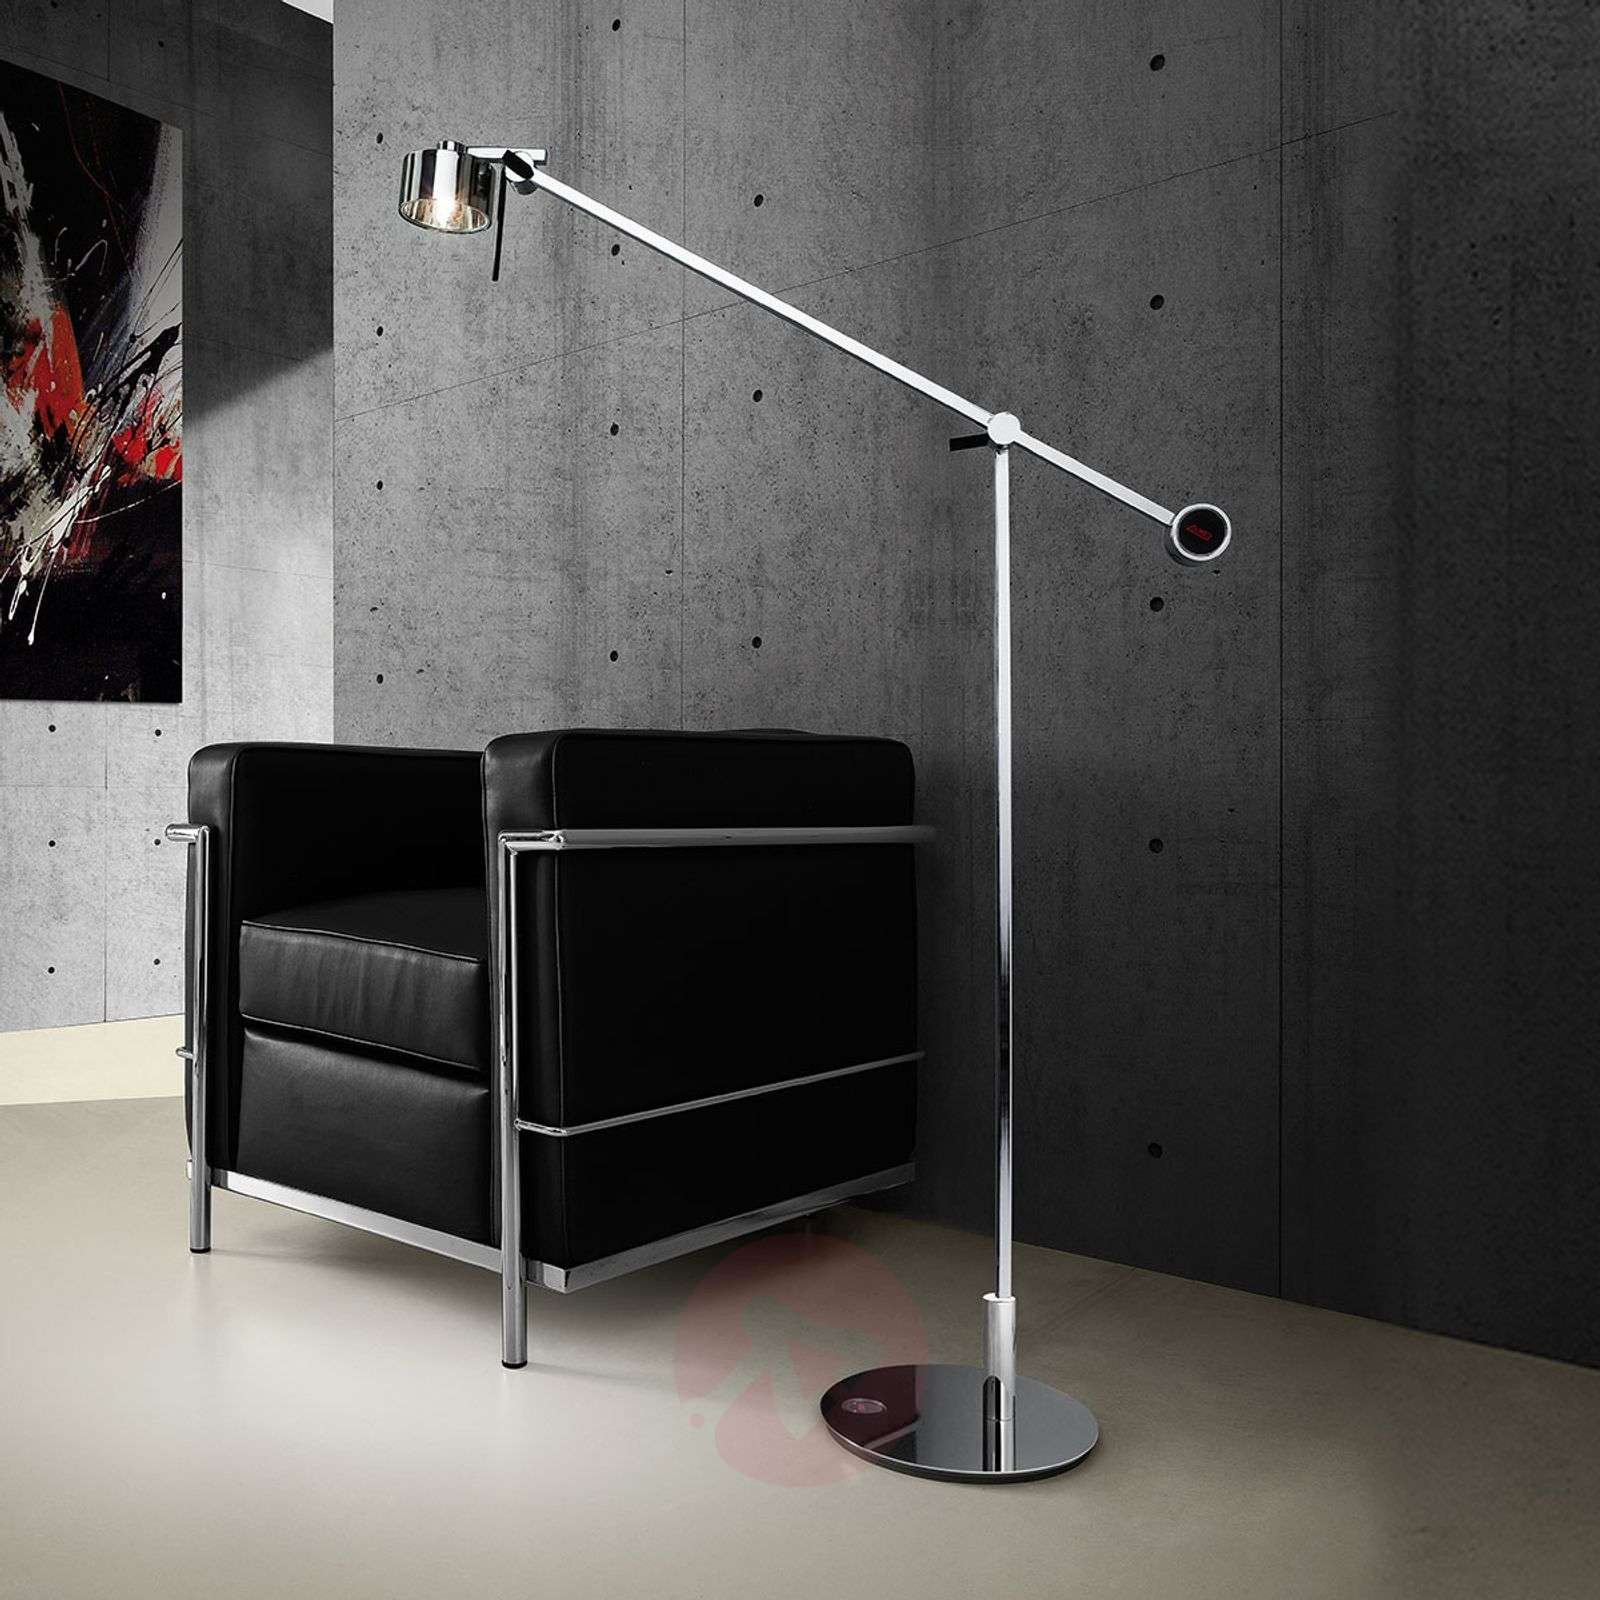 Chrome-plated floor lamp AX20 with dimmer-1088036-01